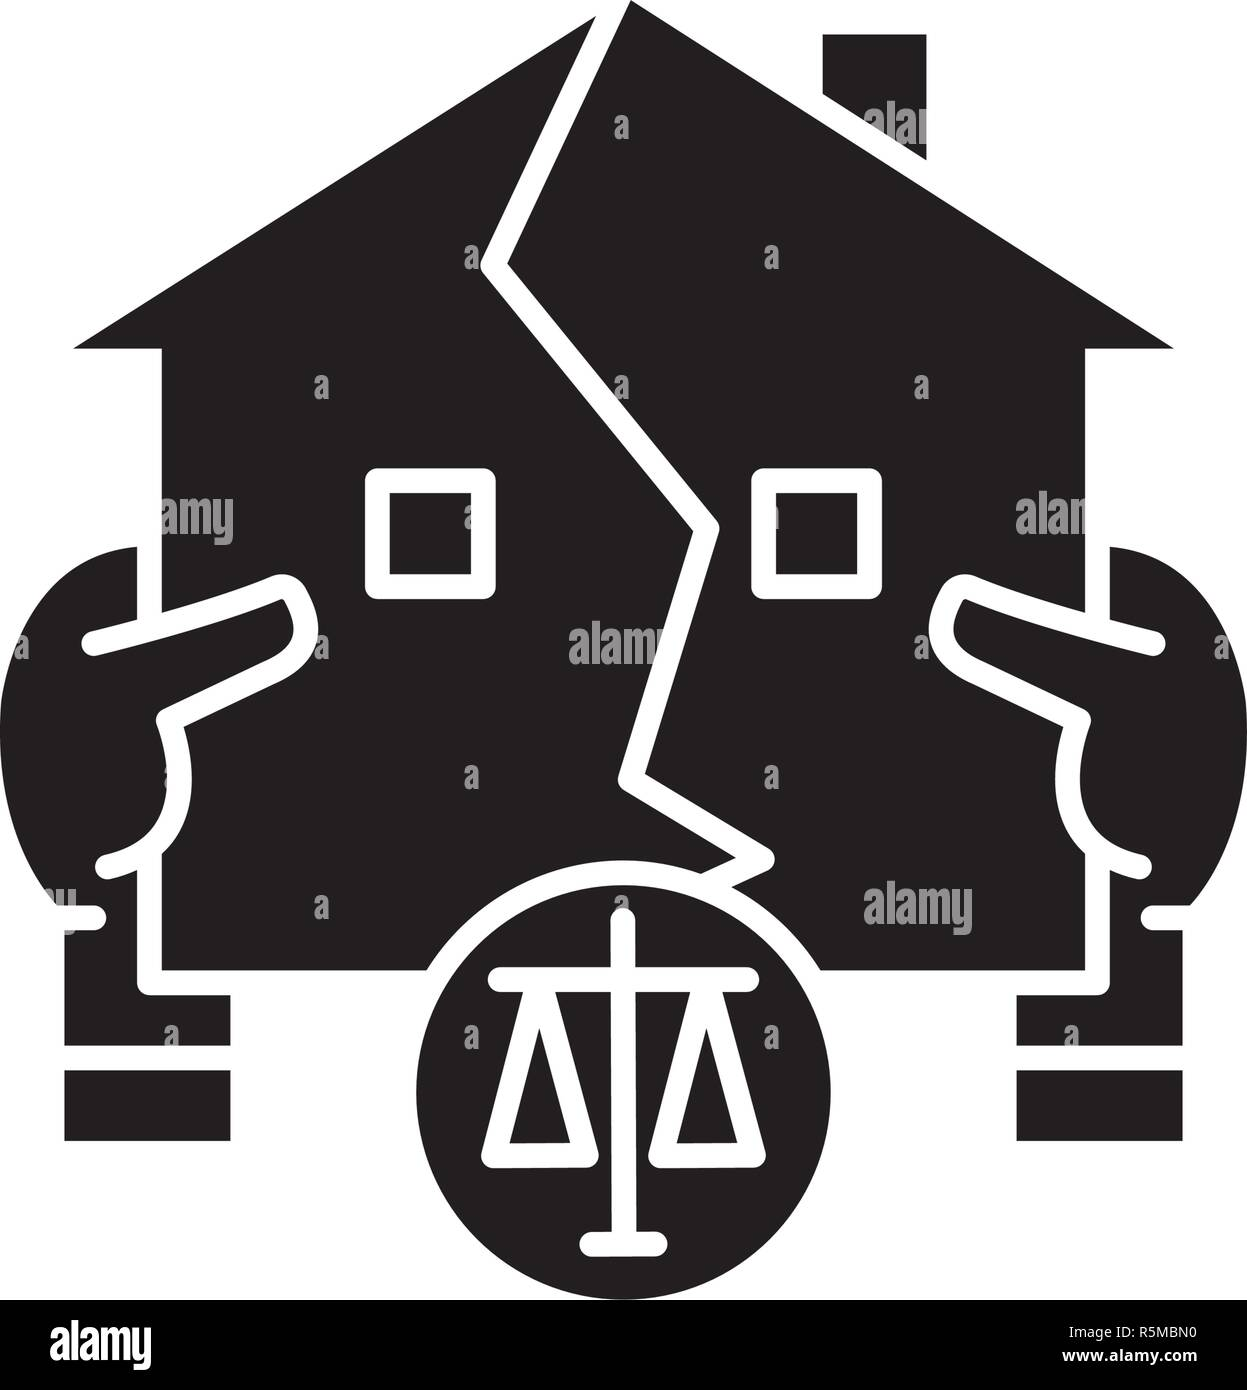 Real estate law black icon, vector sign on isolated background. Real estate law concept symbol, illustration  - Stock Image